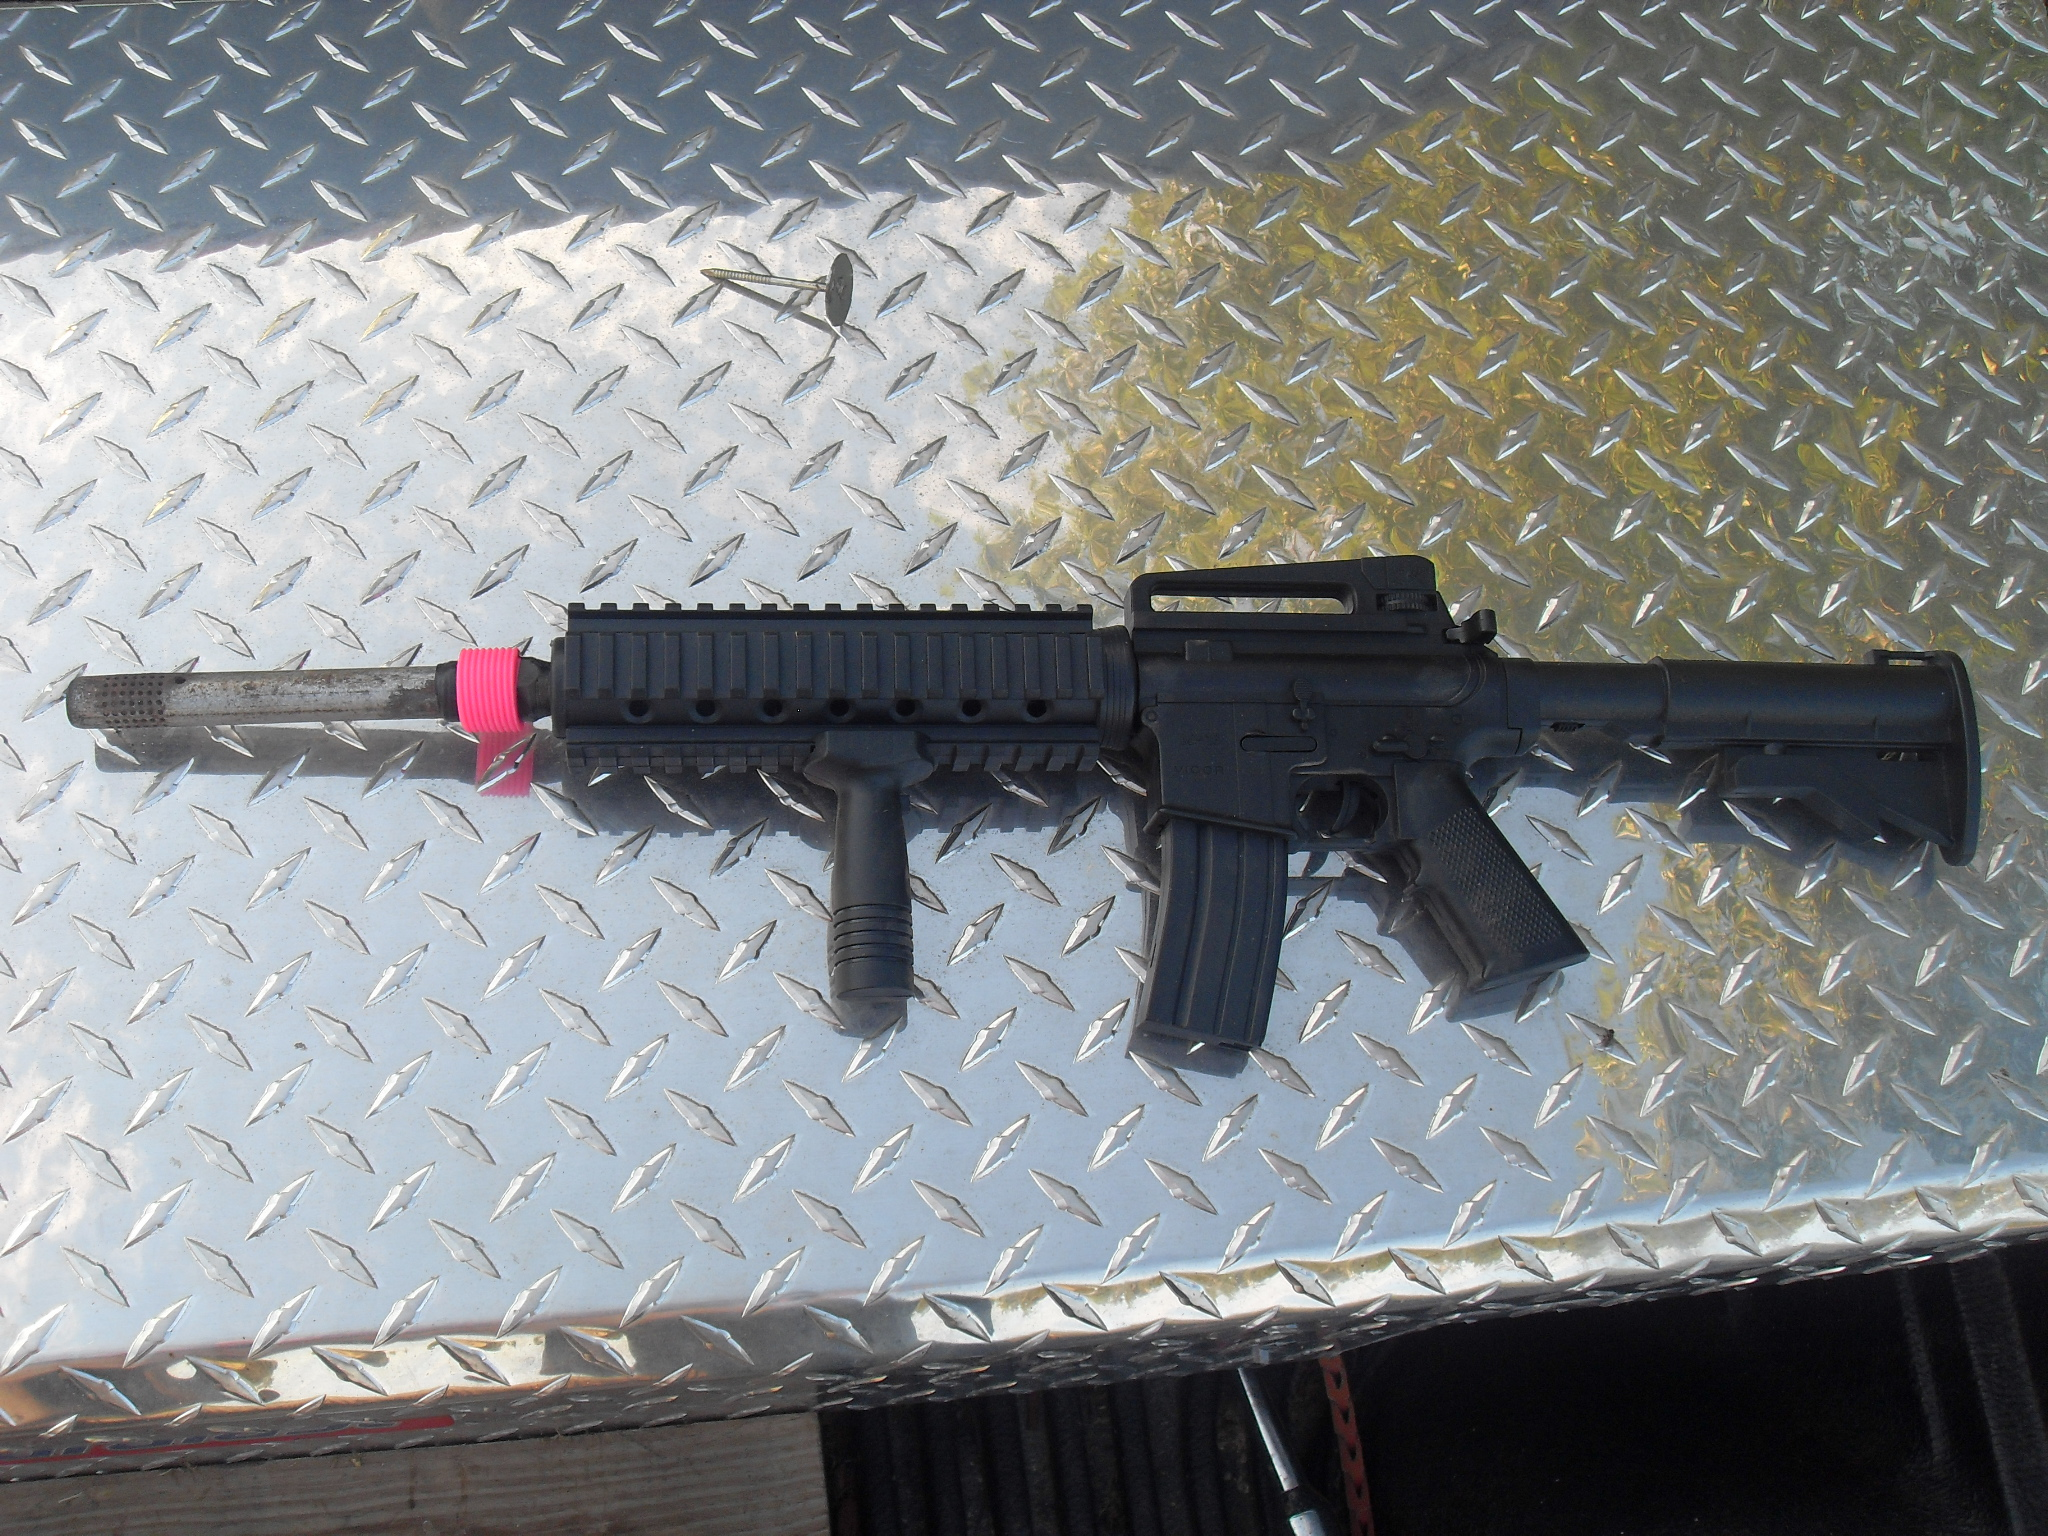 Picture of How to Make a Flash Suppresor/silencer for an Airsoft Gun